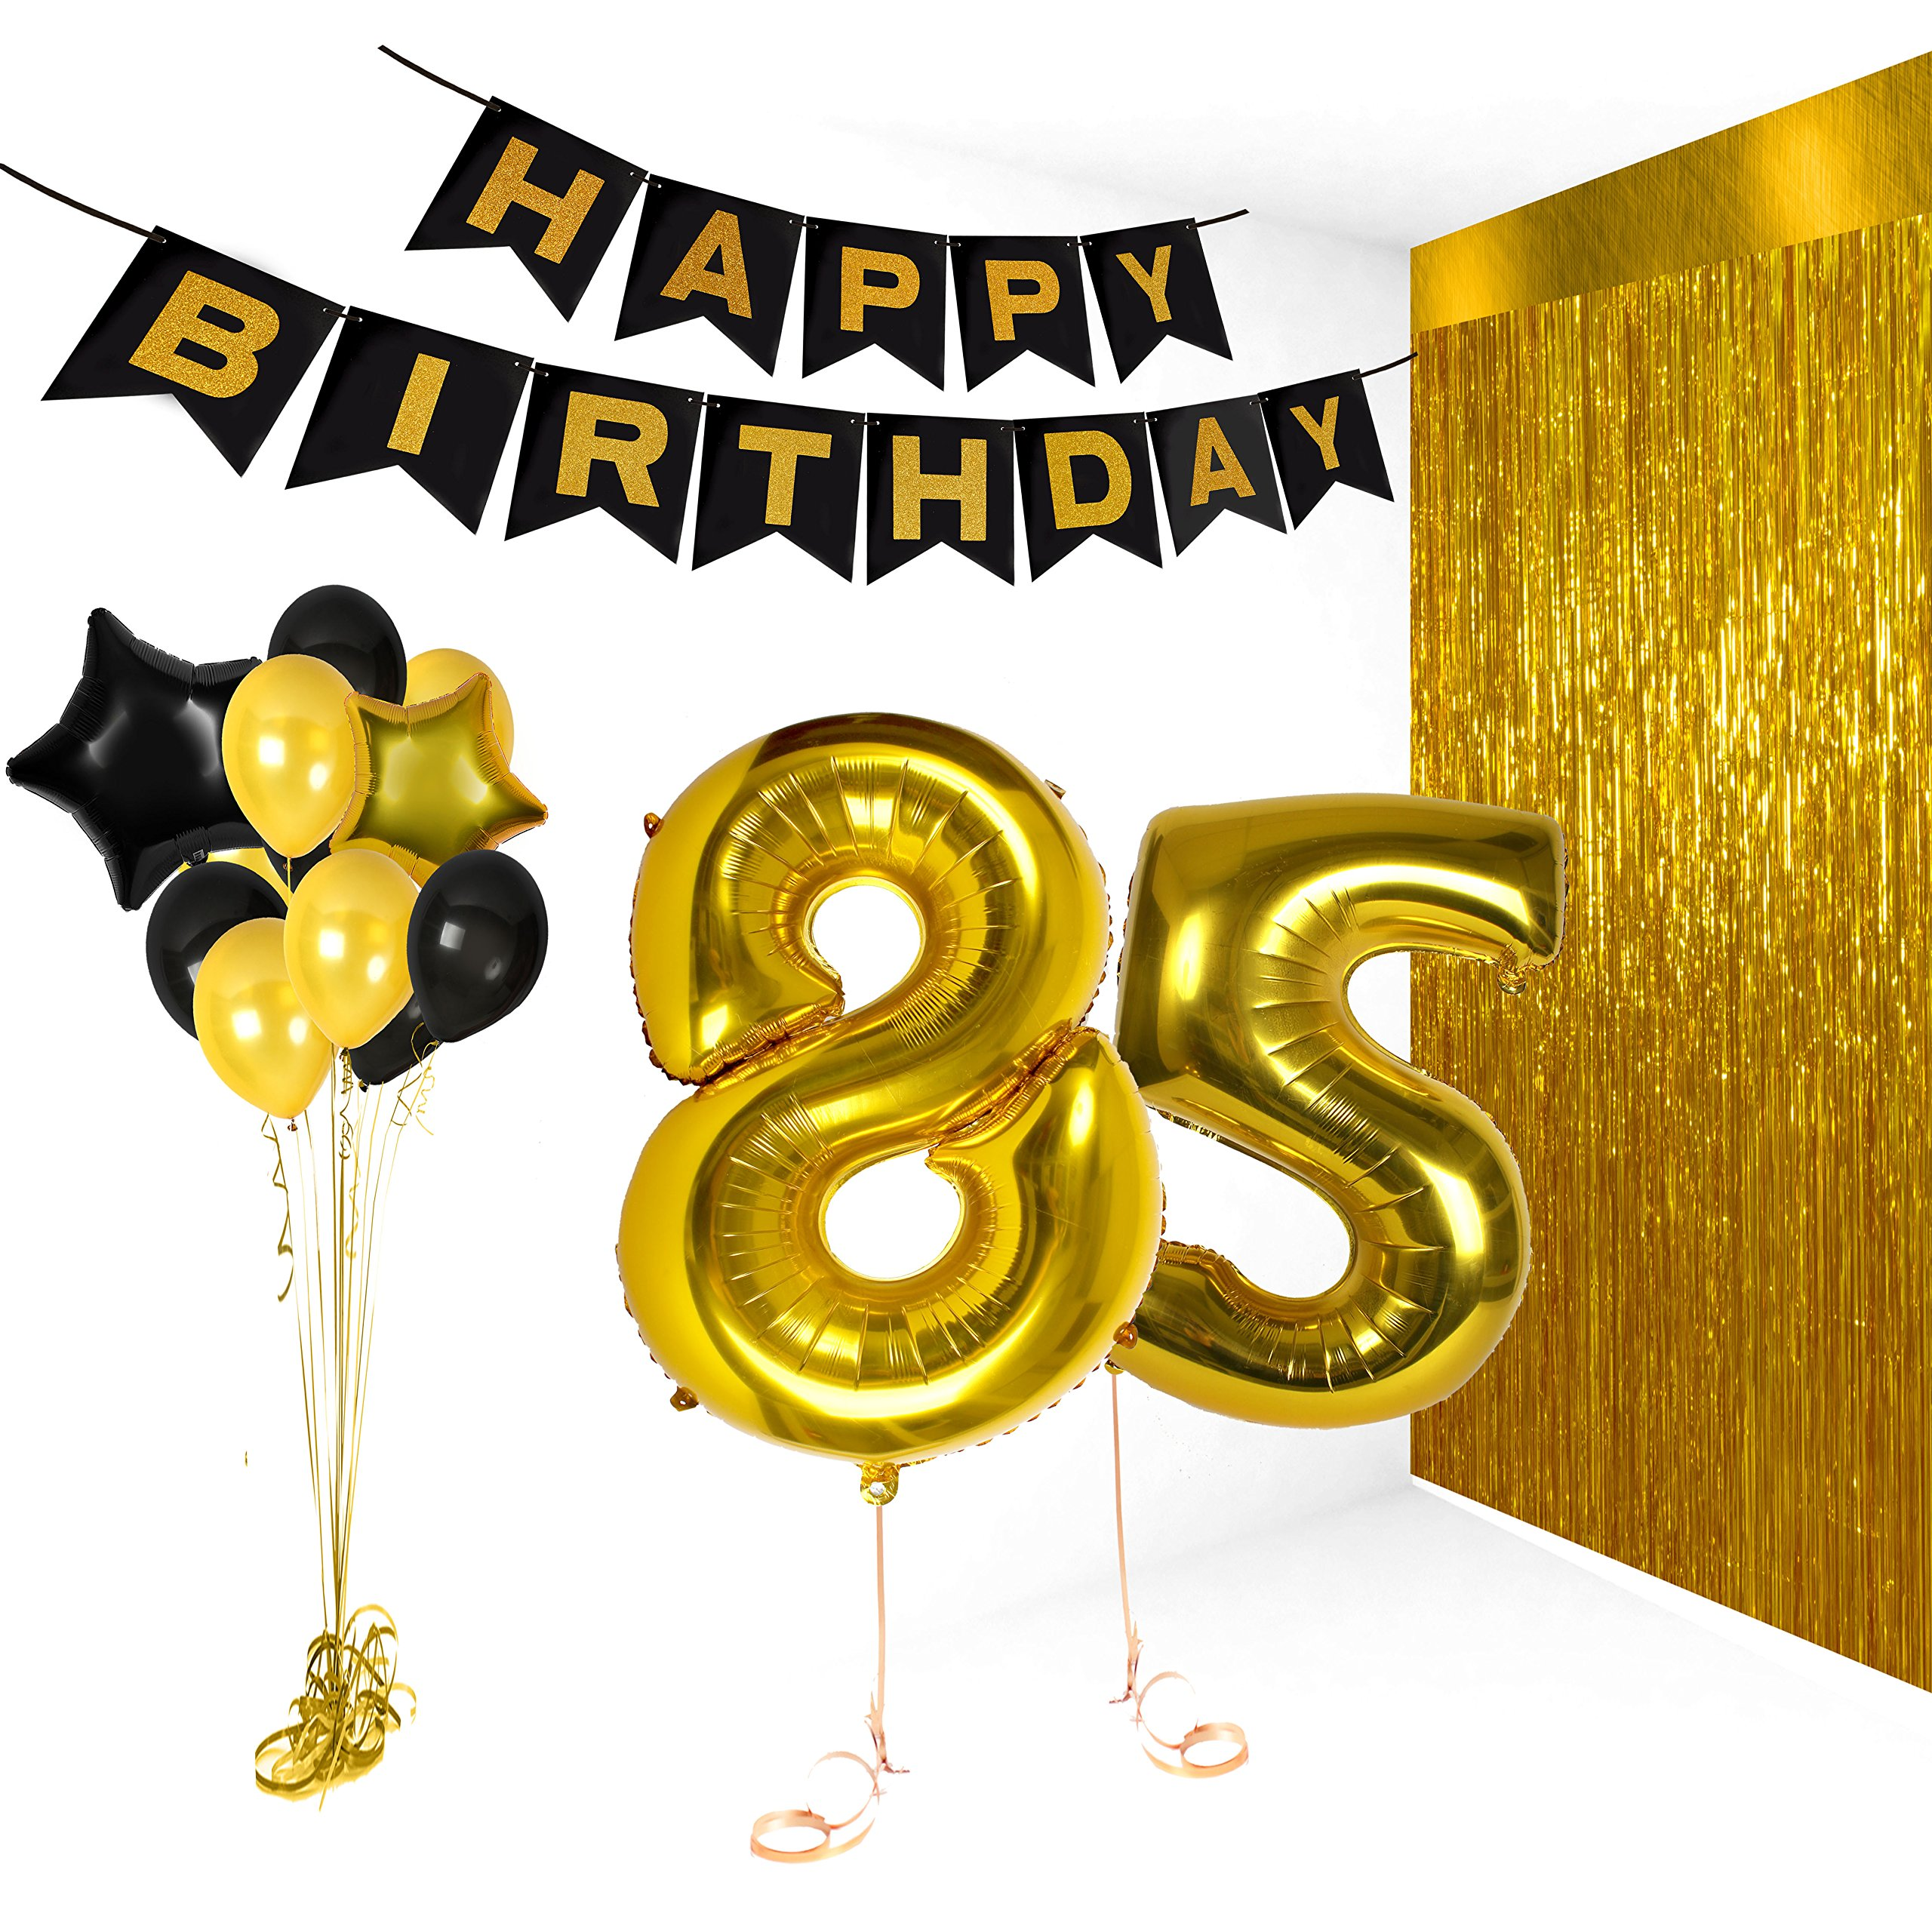 Details About Treasures Gifted Happy 85th Birthday Party Decorations Supplies Kit Gold